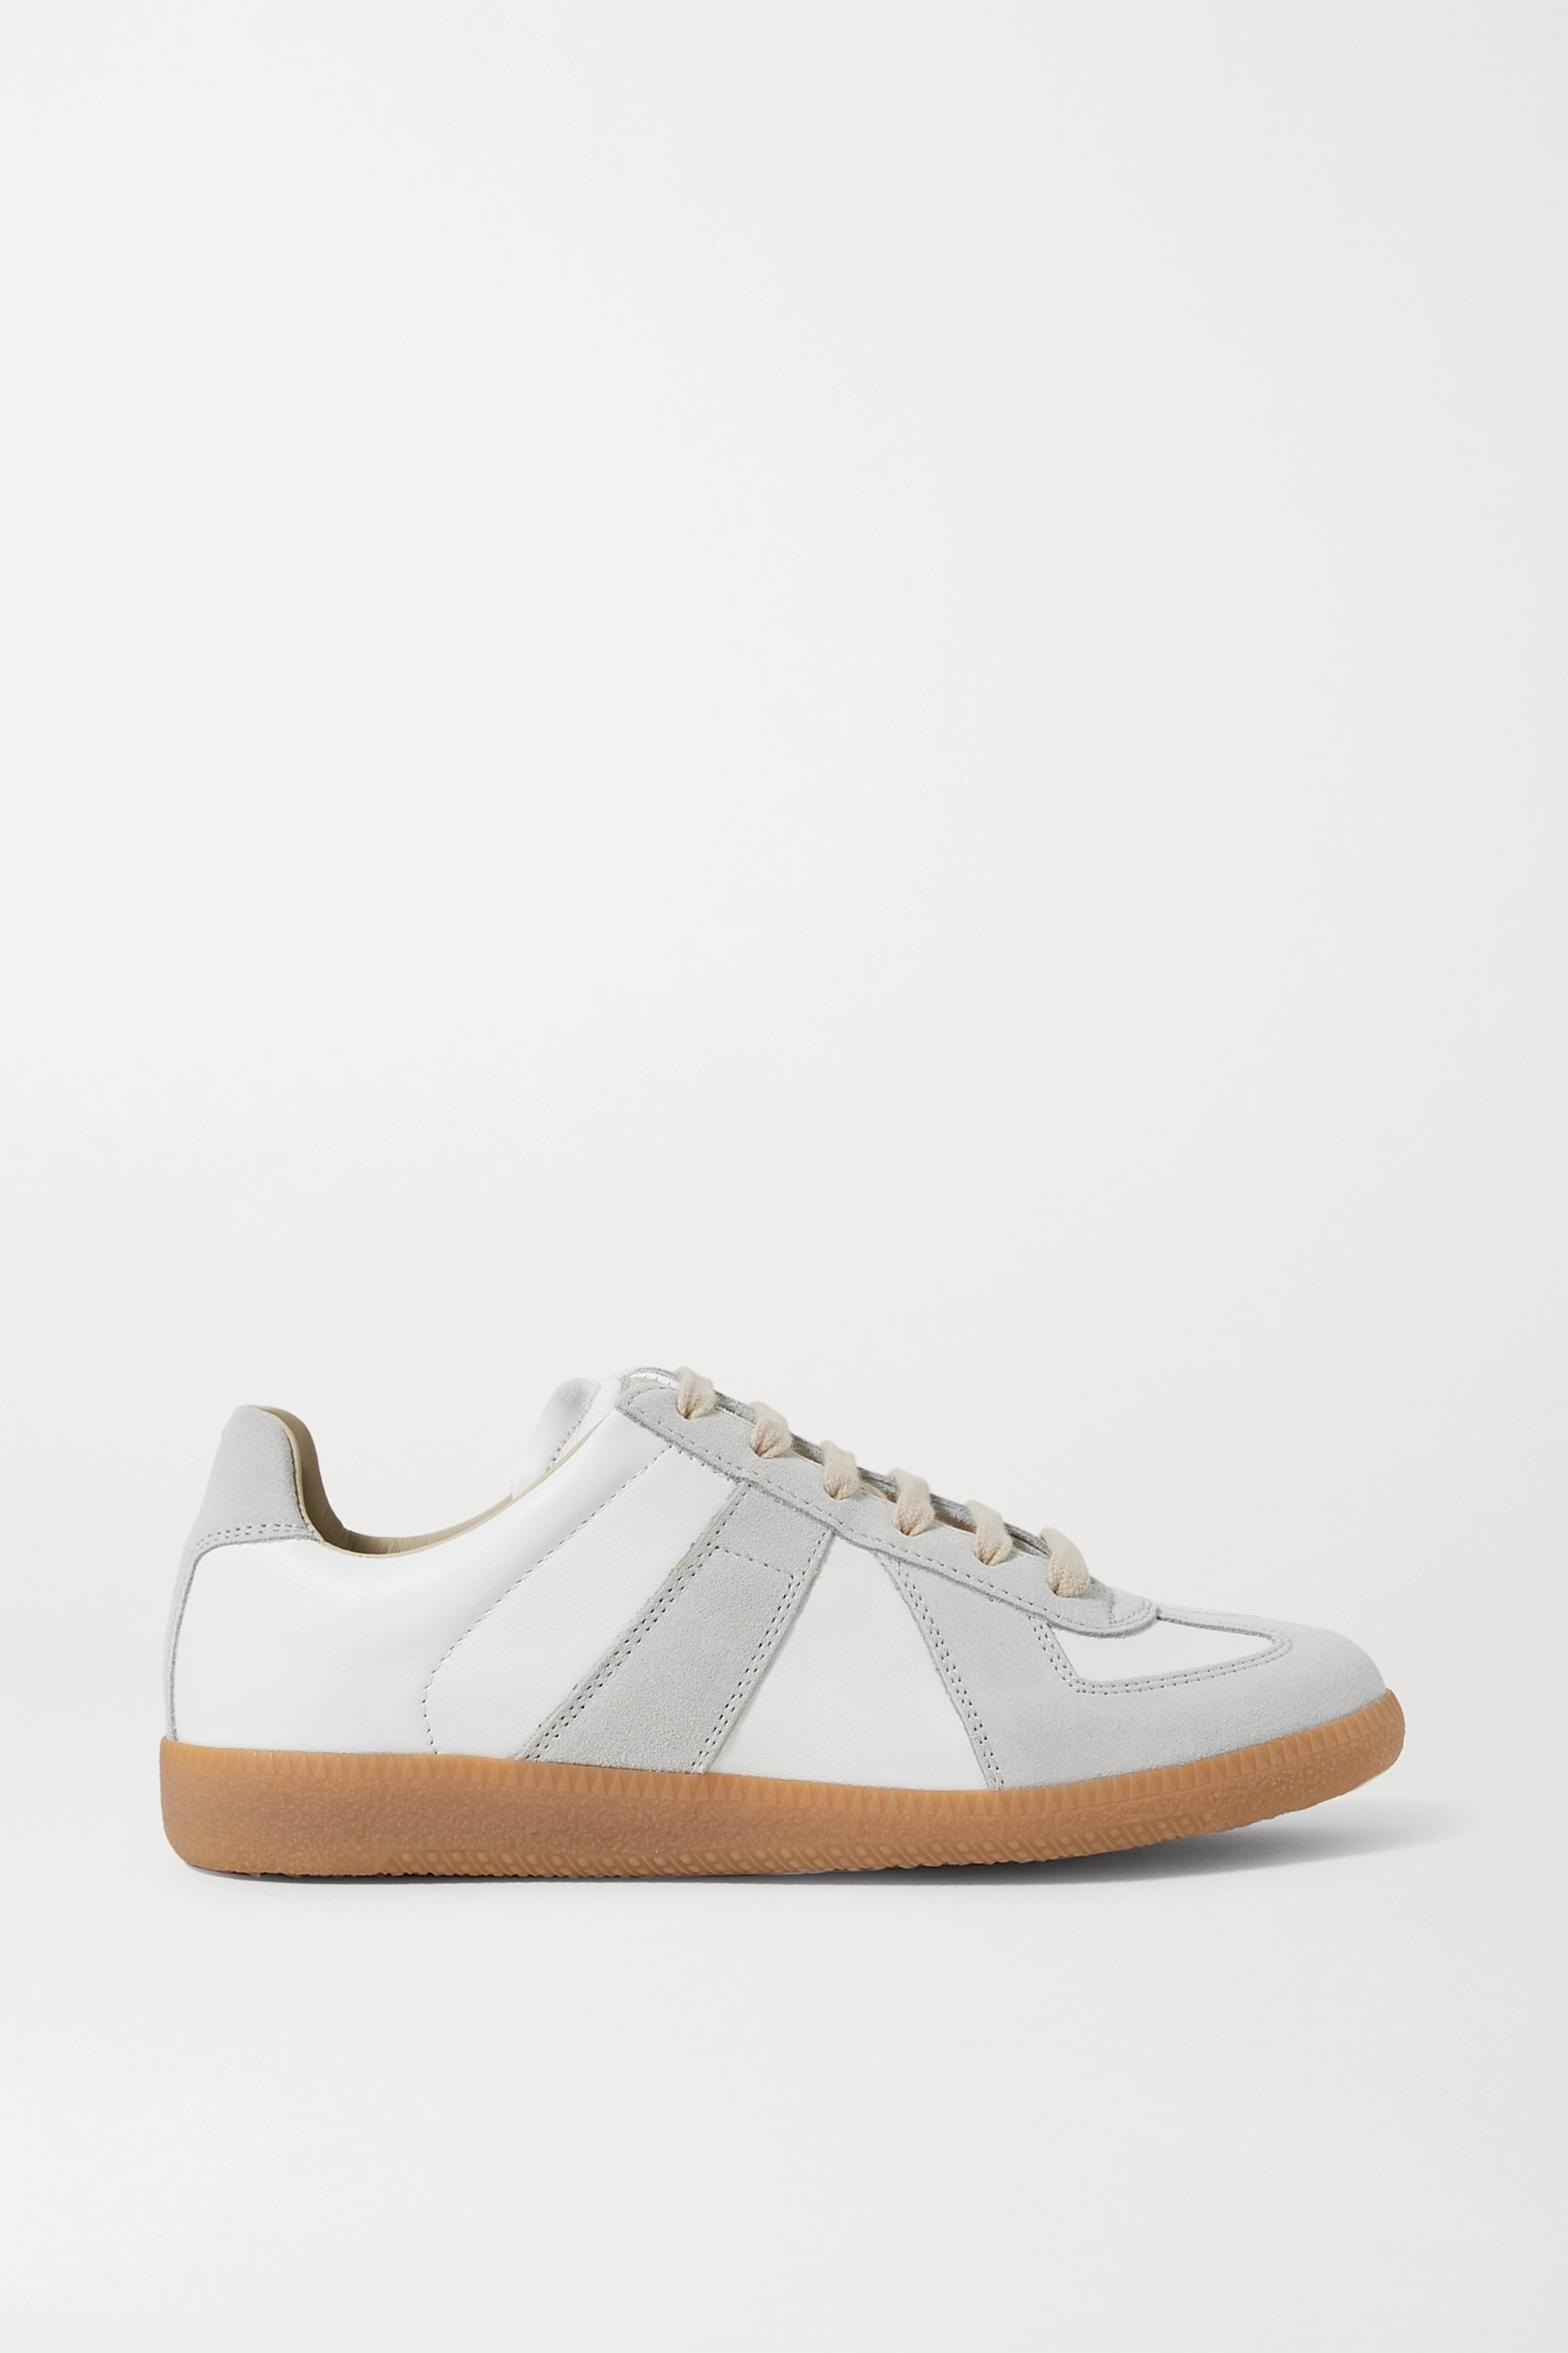 Off-white Replica leather and suede